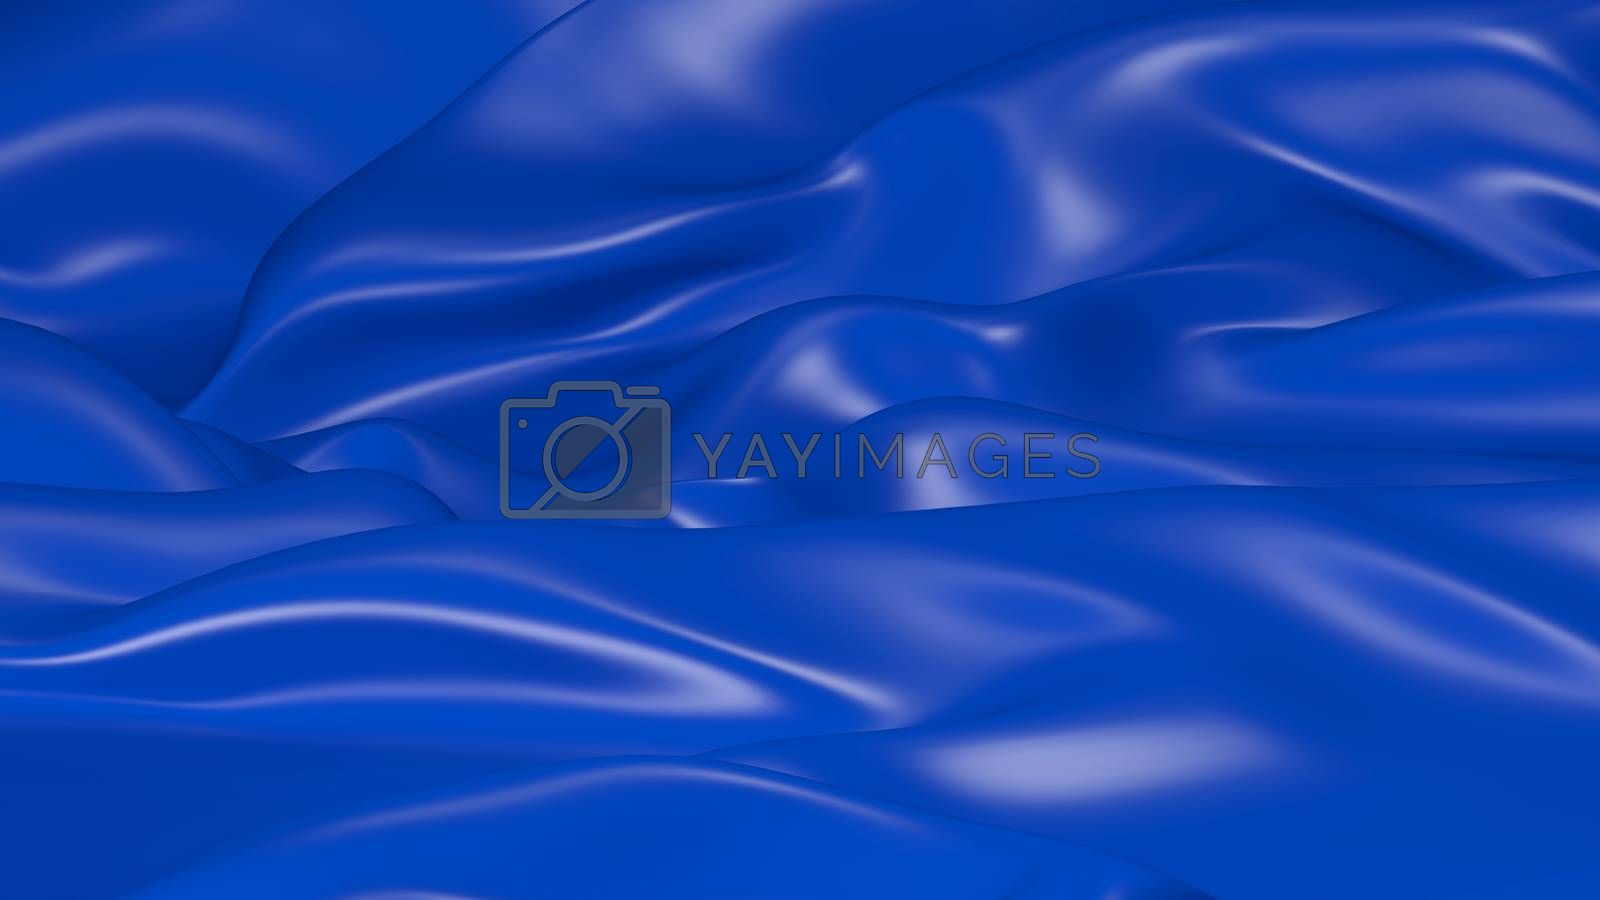 3D Illustration Abstract Blue Background with Glare